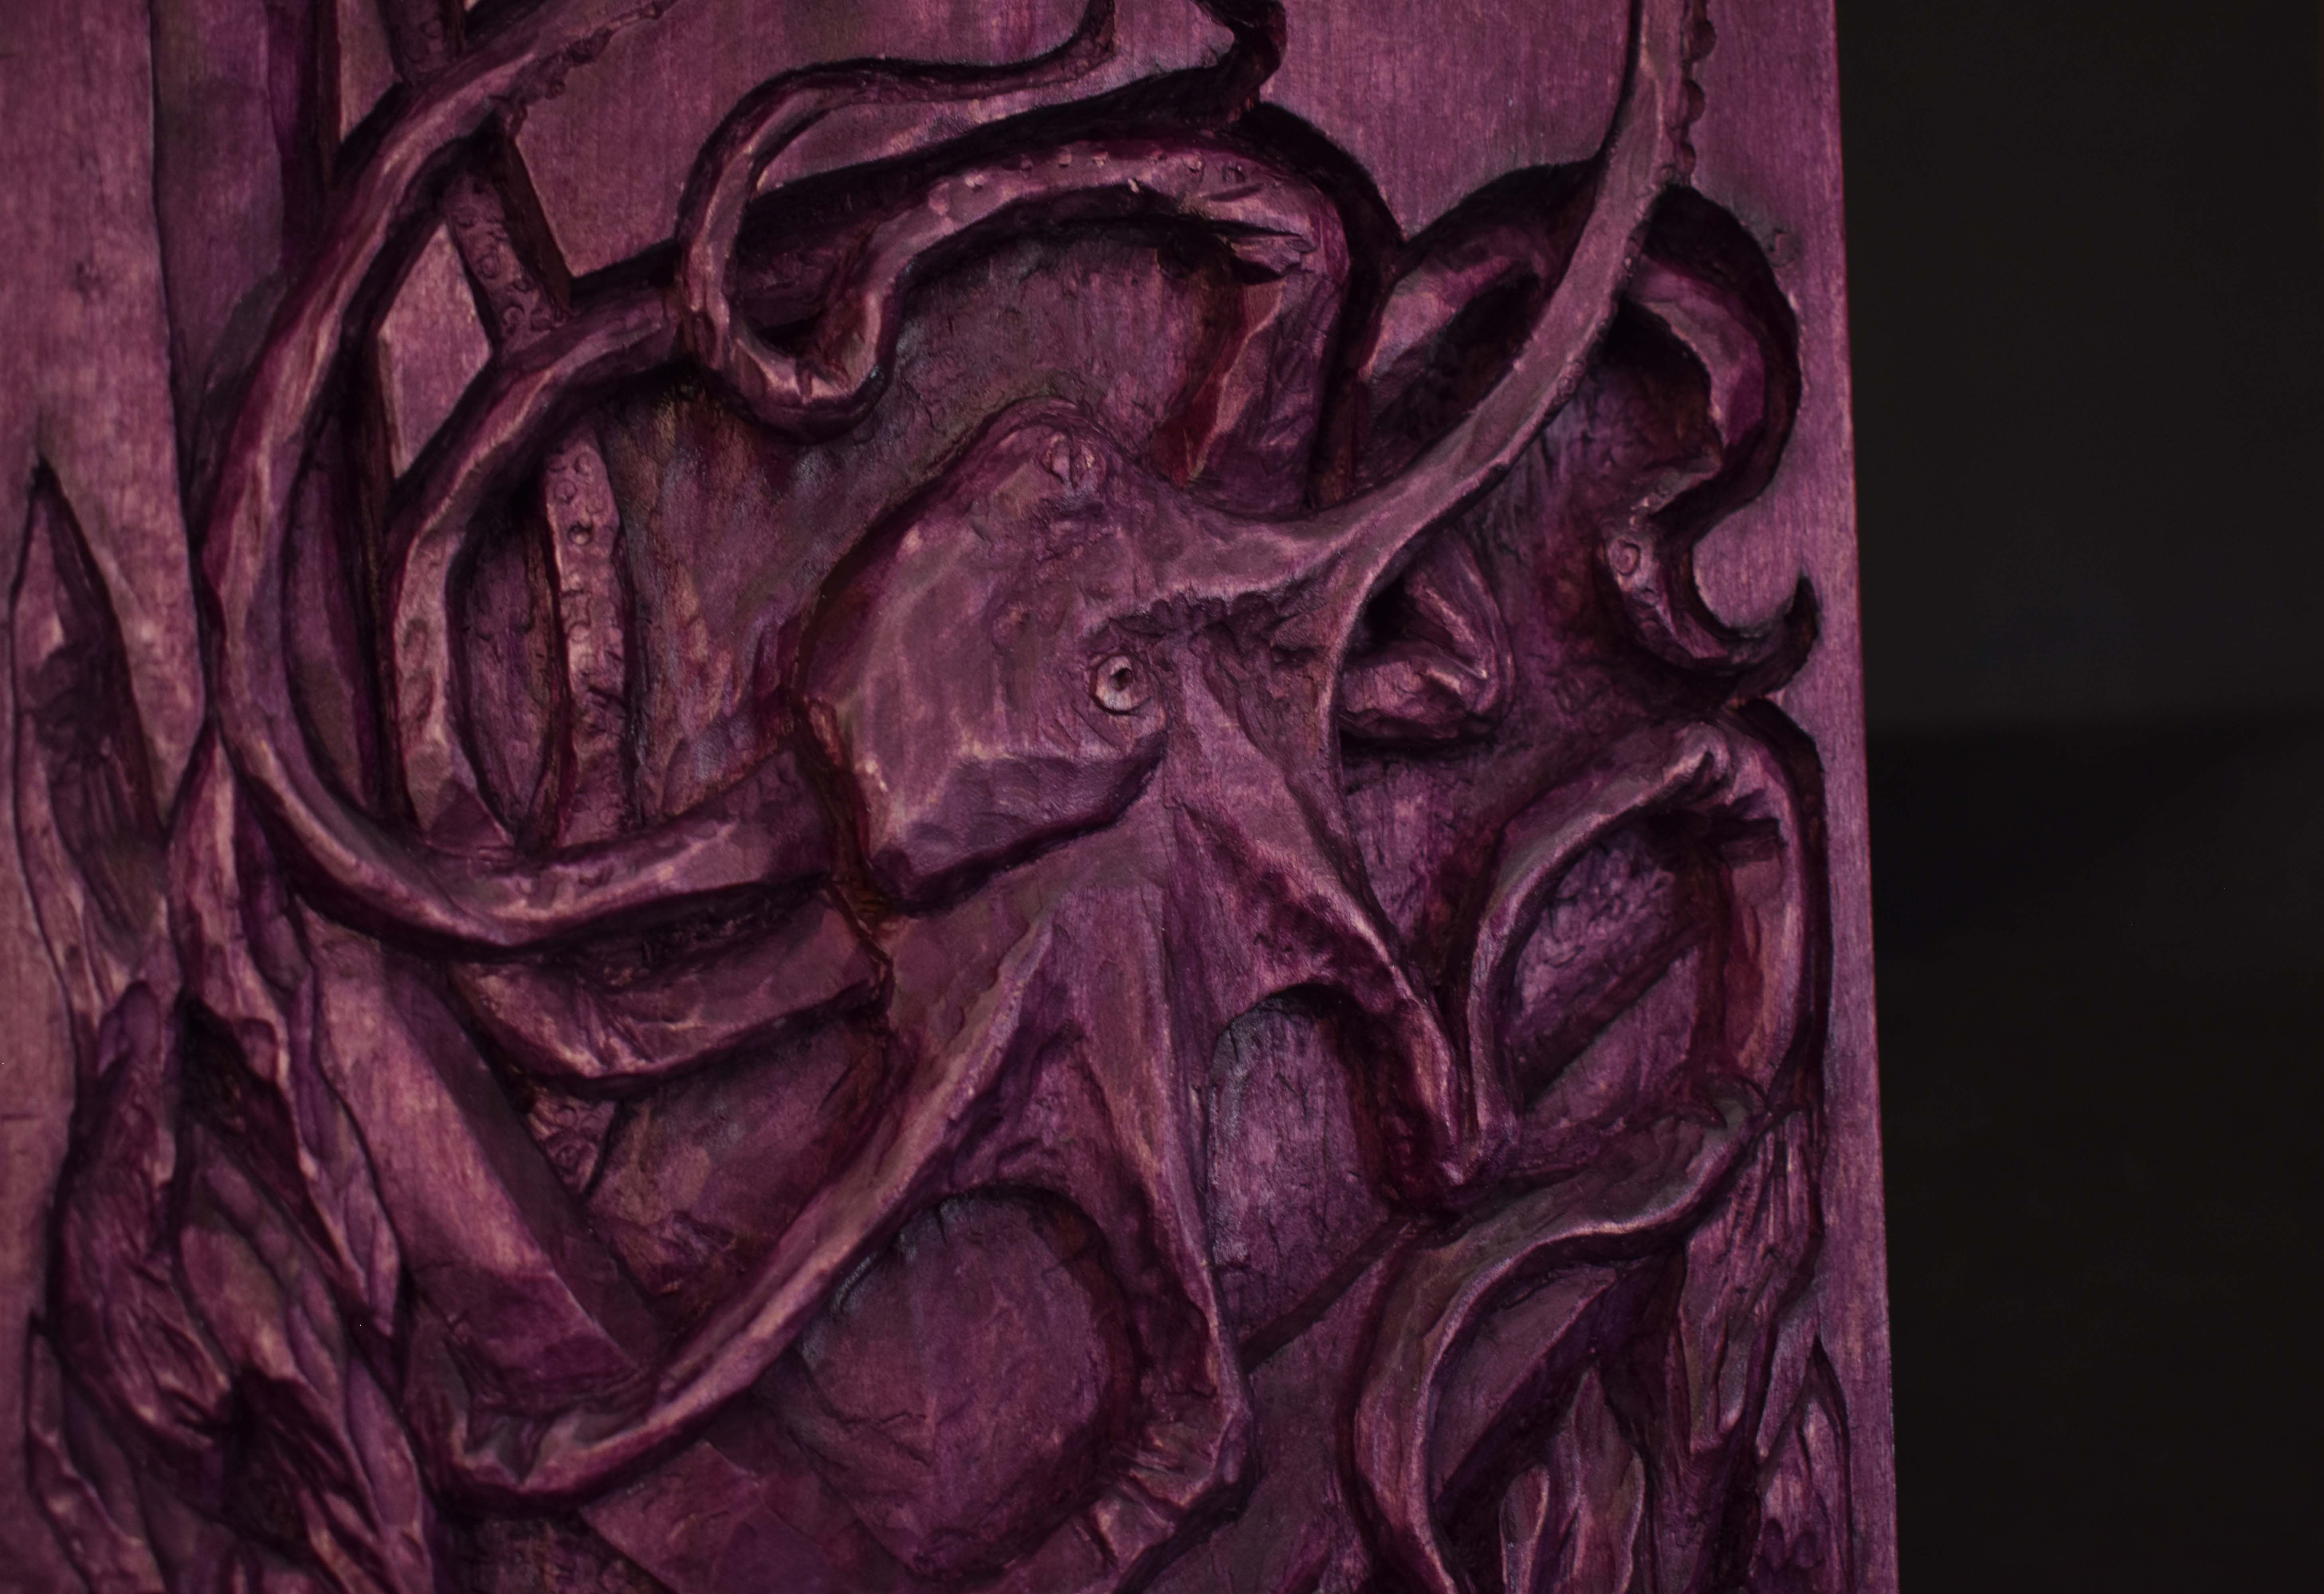 birthday gift fishing ocean relief sculpture handmade basswood wood octopus carving djazzga purple